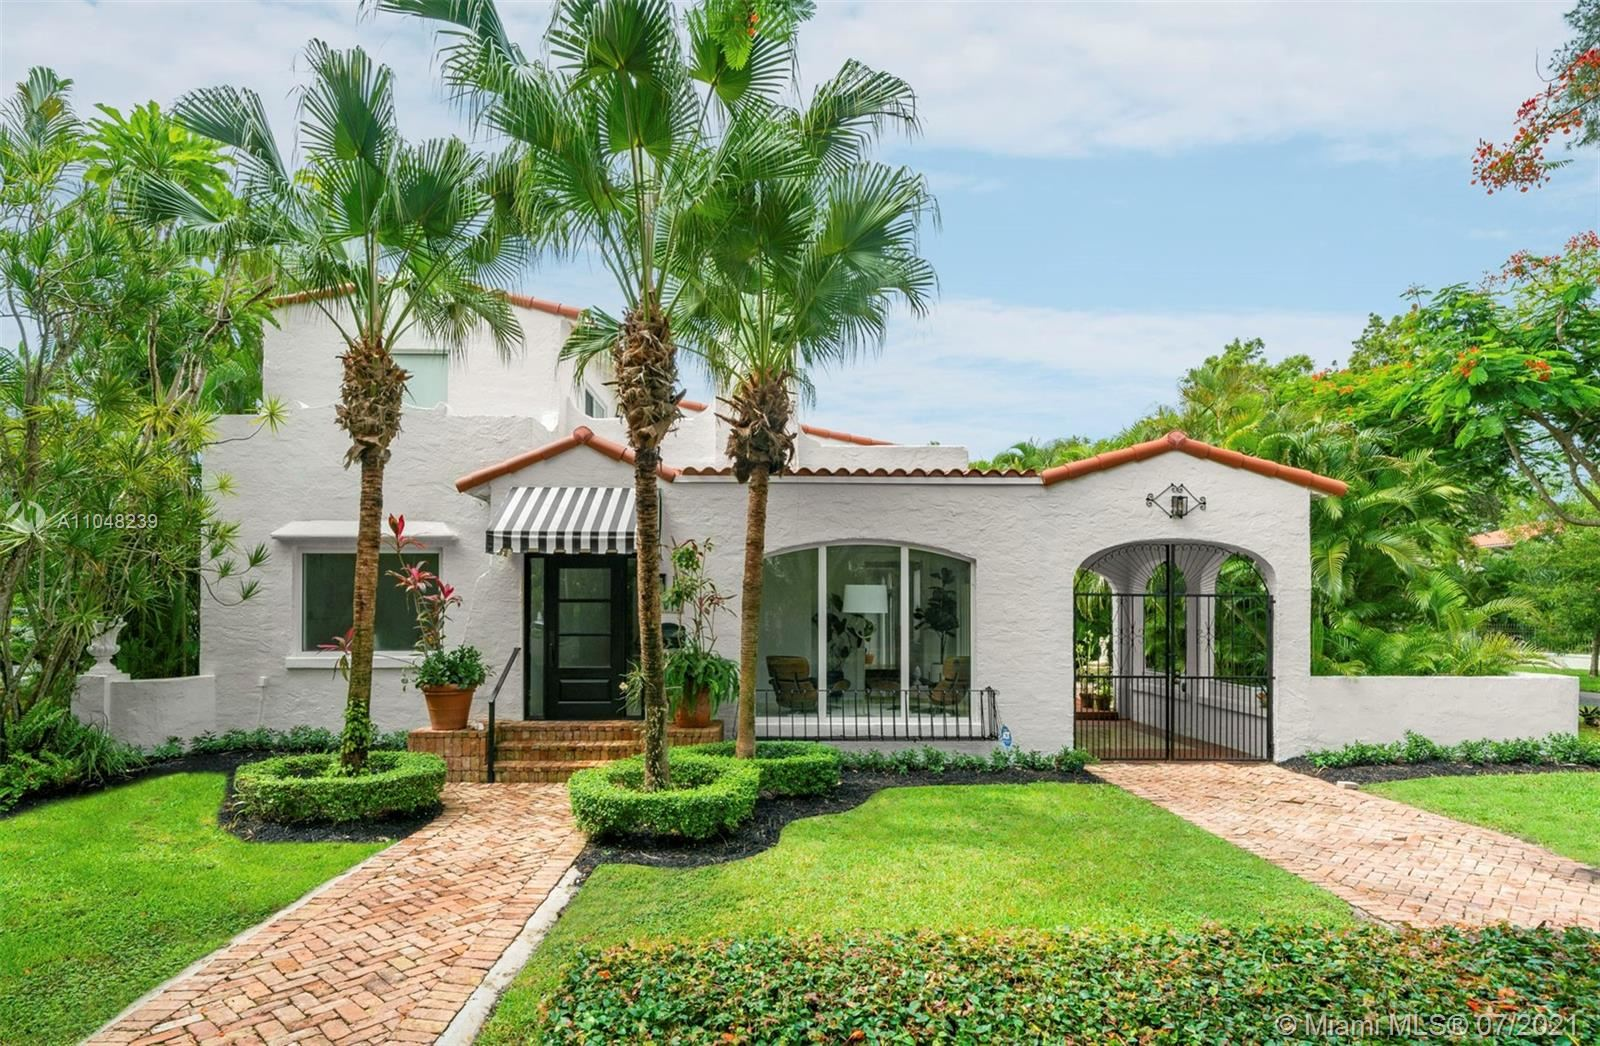 Photo of 1042 Sorolla Ave, Coral Gables, FL 33134 (MLS # A11048239)